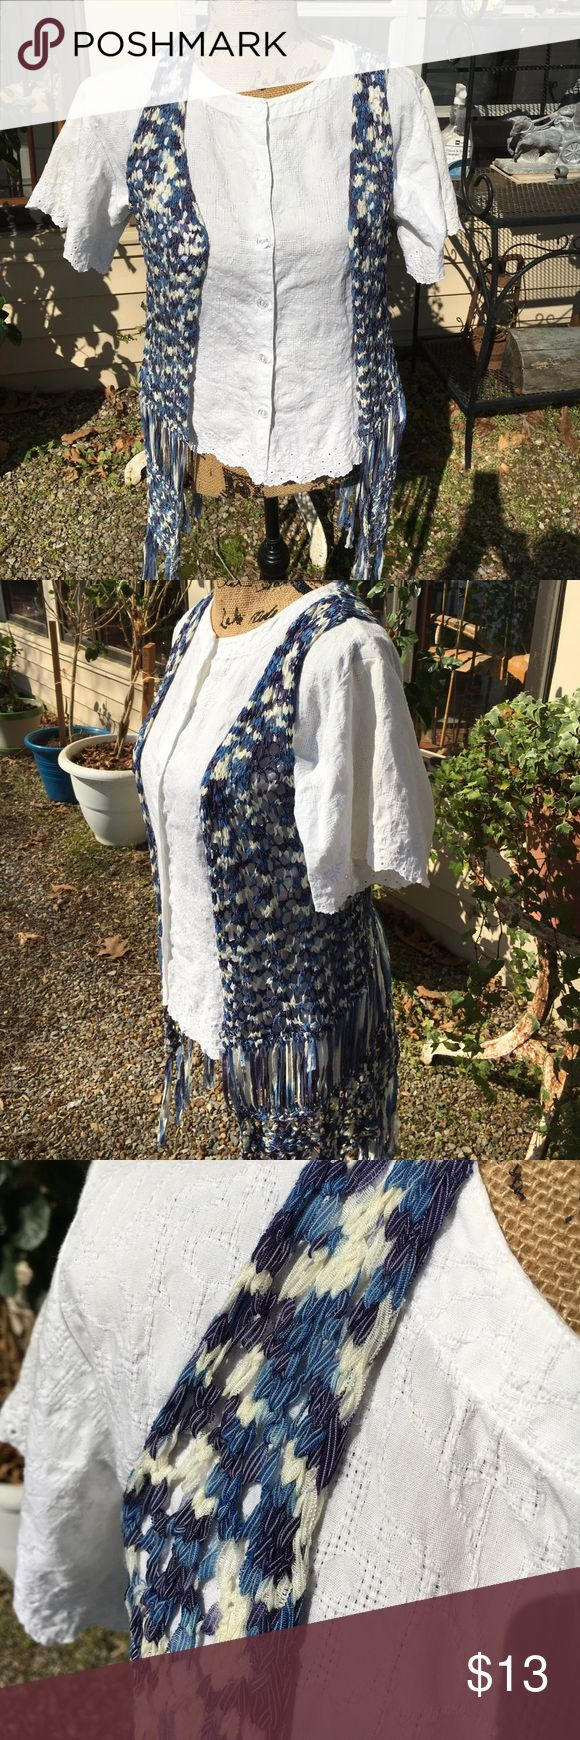 Blue and white woven vest with long fringe Xhilaration woven blue and white vest with long fringe. So very cute with jeans or shorts. Completes the look you may be going for and soft and washable ‼️💕 xhilarations Other